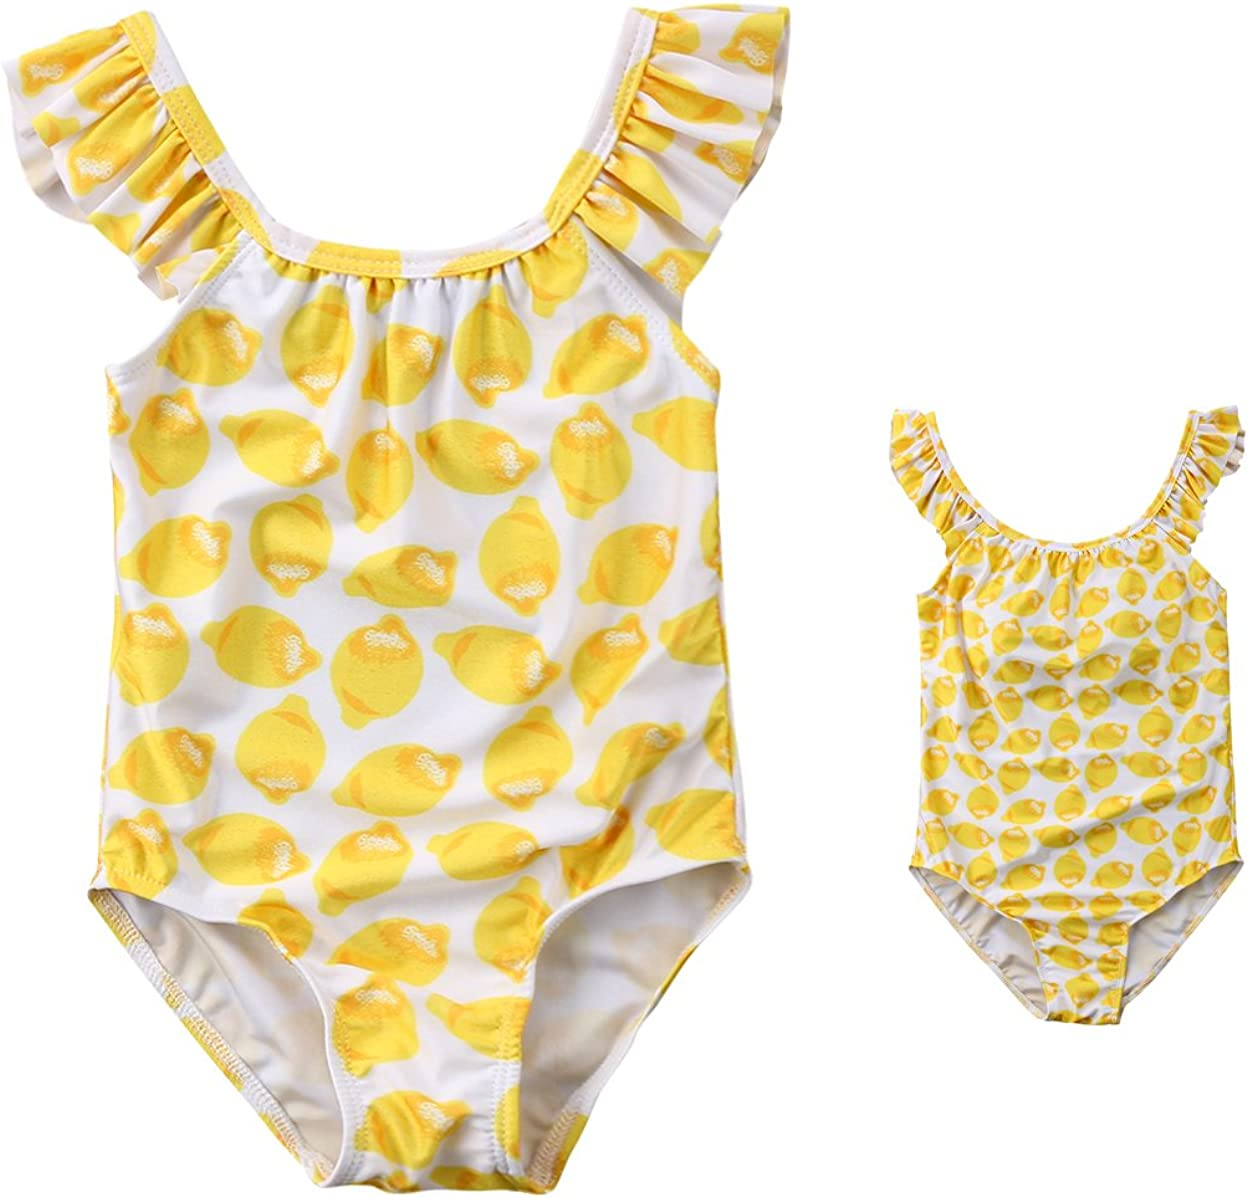 2018 Mom and Baby Girls Family Matching Lemon Swimsuit One Piece Beach Wear